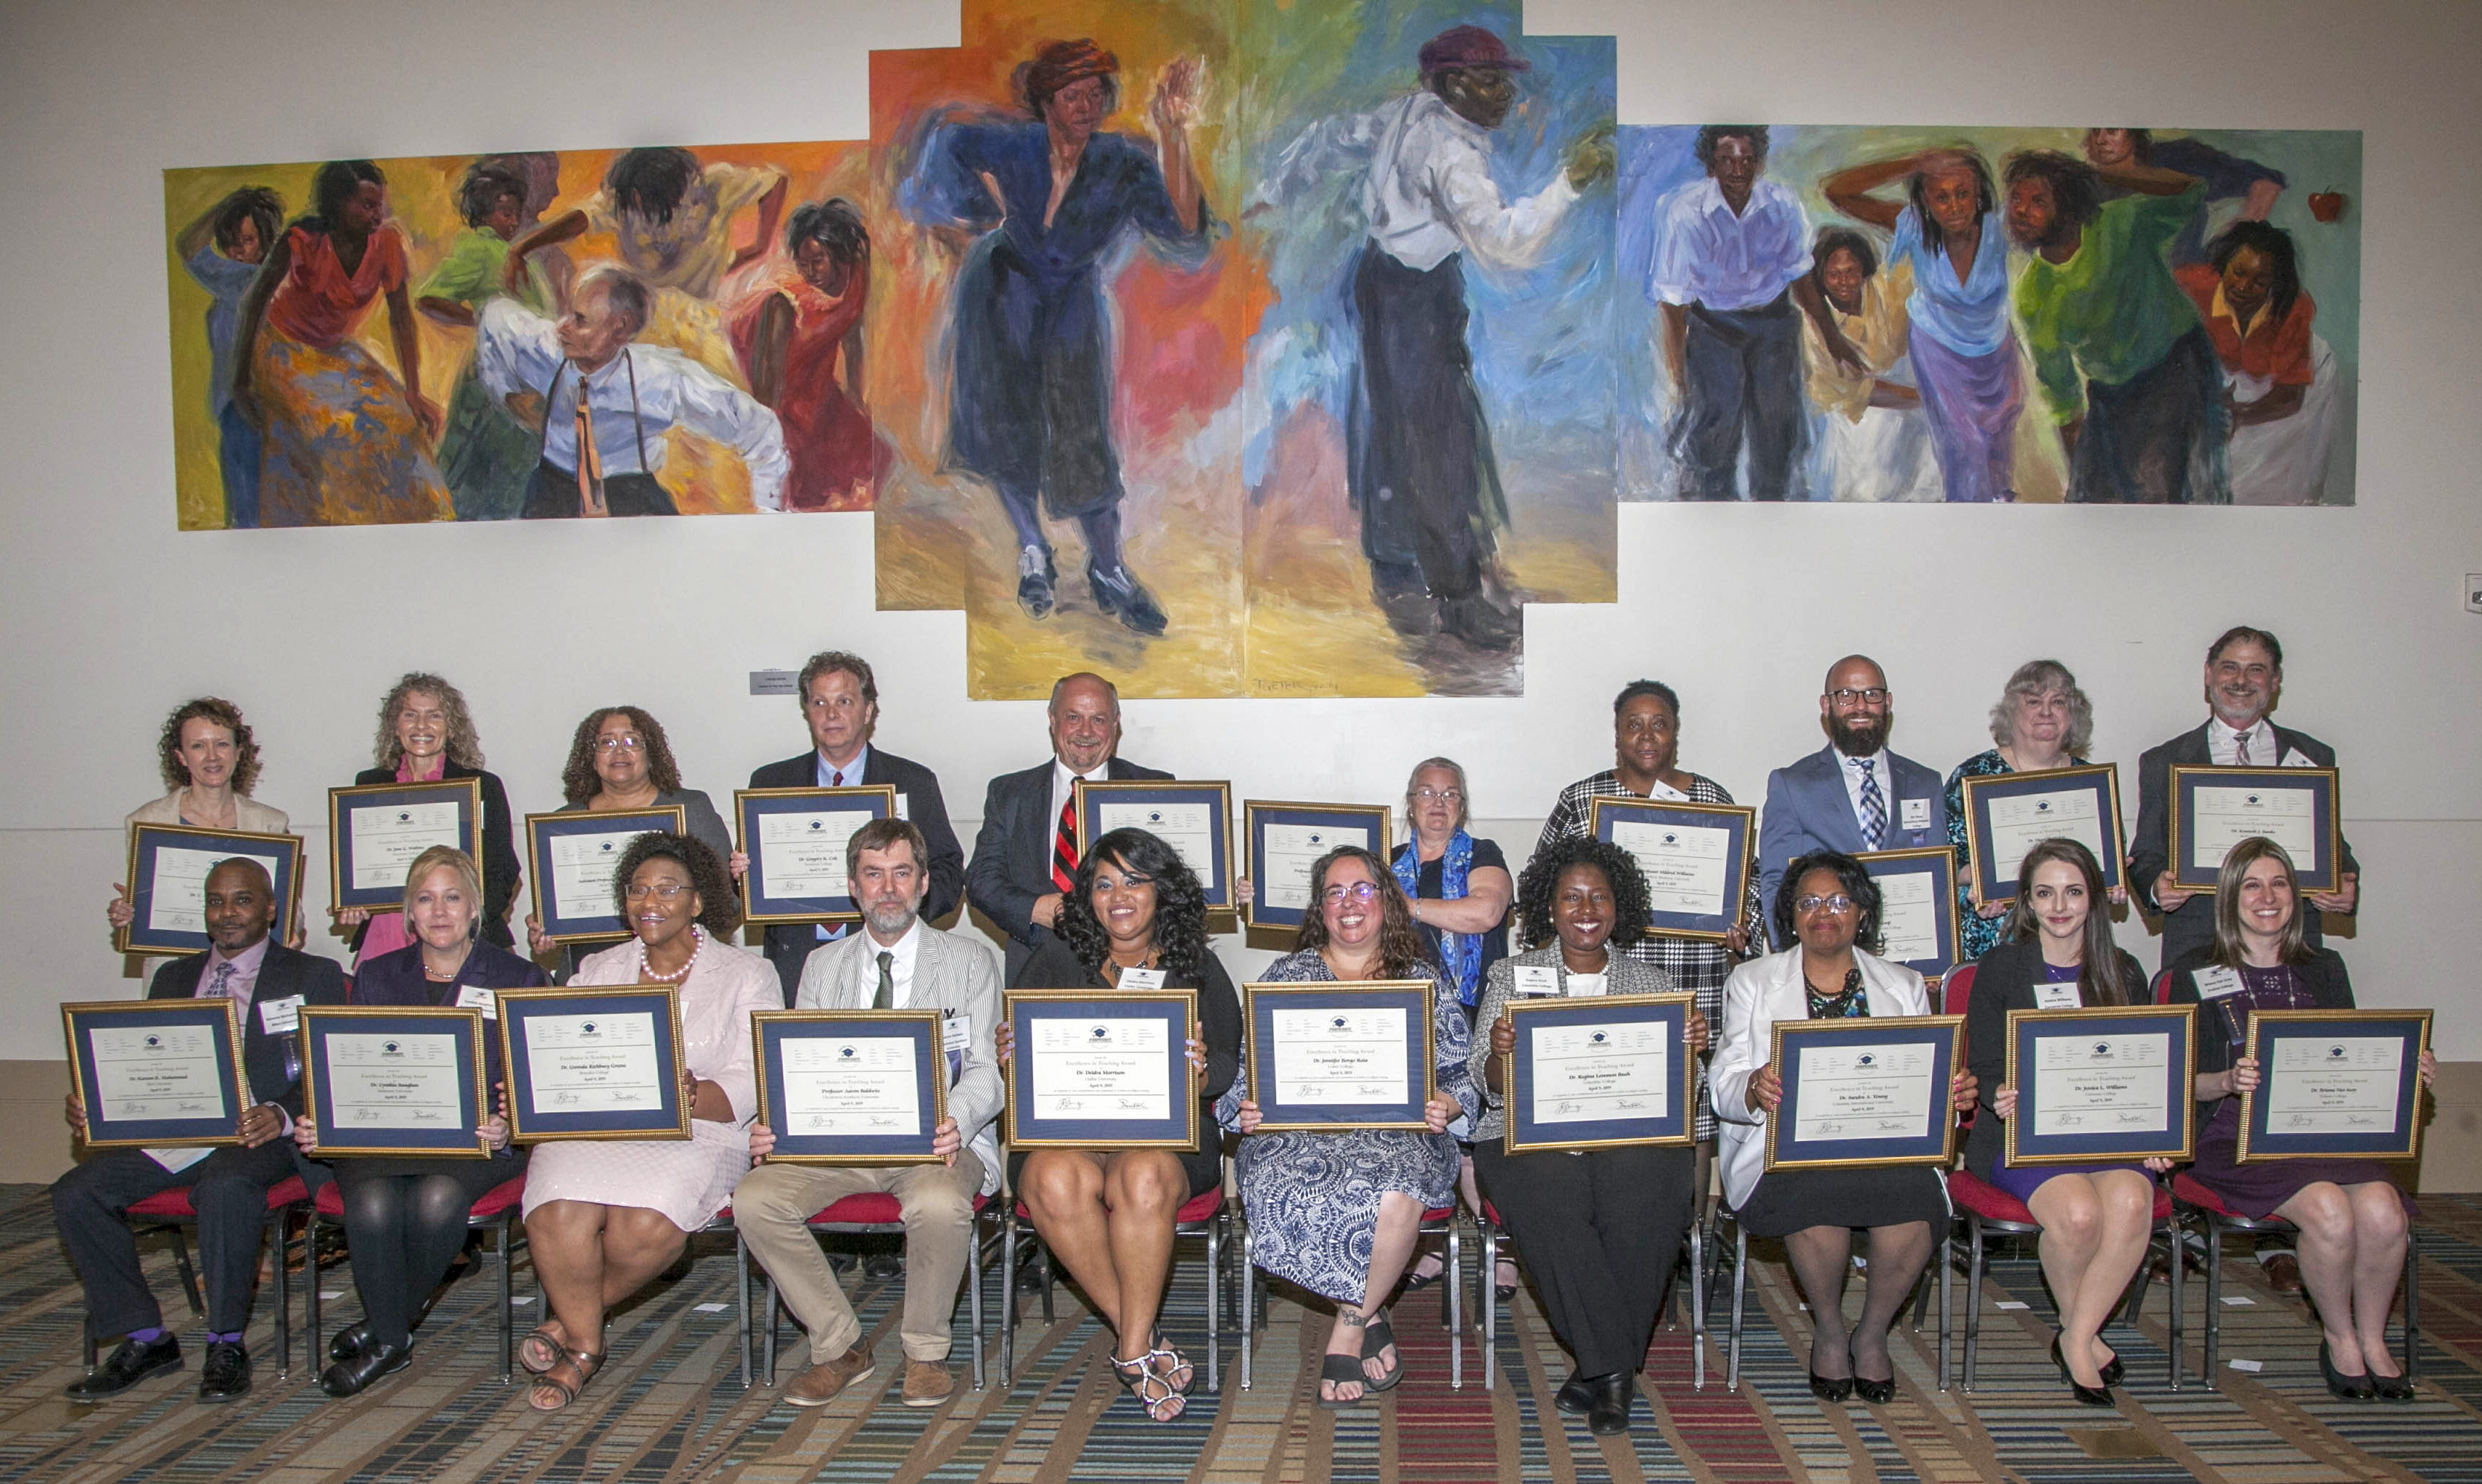 Leading professors at SCICU's 20 member colleges and universities were honored with Excellence In Teaching awards on April 9. The awards dinner kicked off the 2019 SC Independent Colleges and Universities week.